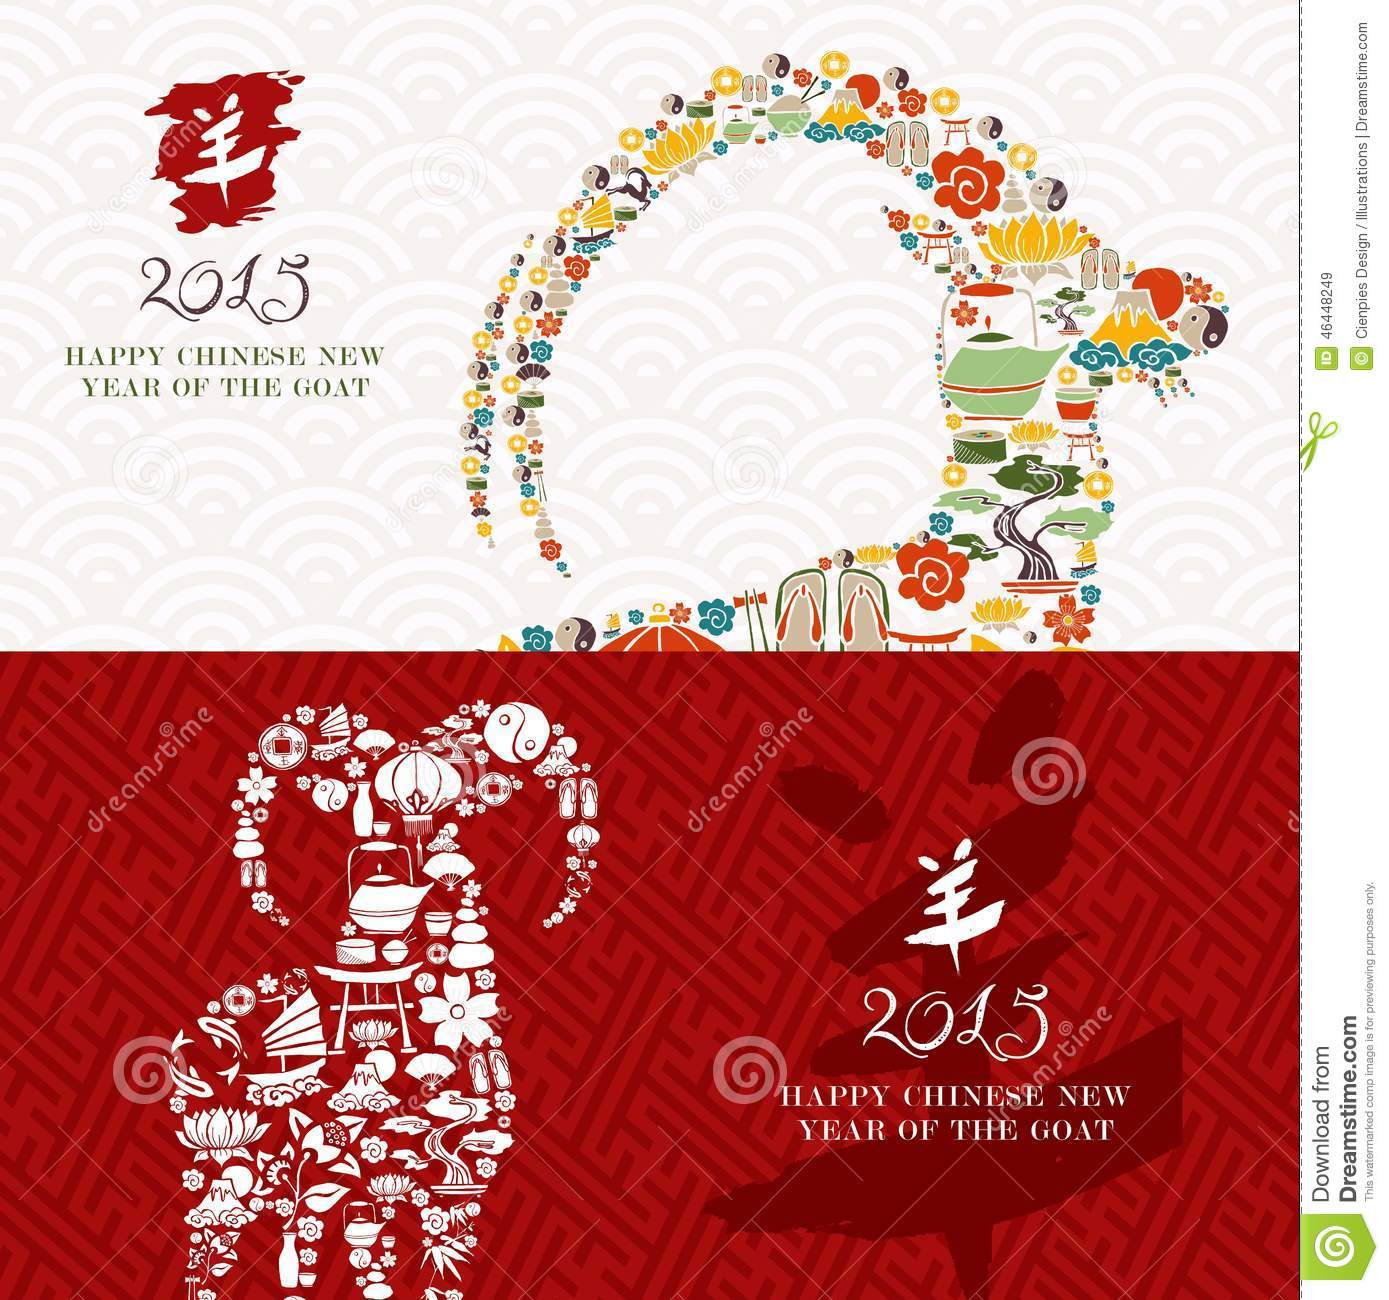 Chinese new year of the goat 2015 icons greeting cards set stock chinese new year of the goat 2015 icons greeting cards set kristyandbryce Choice Image